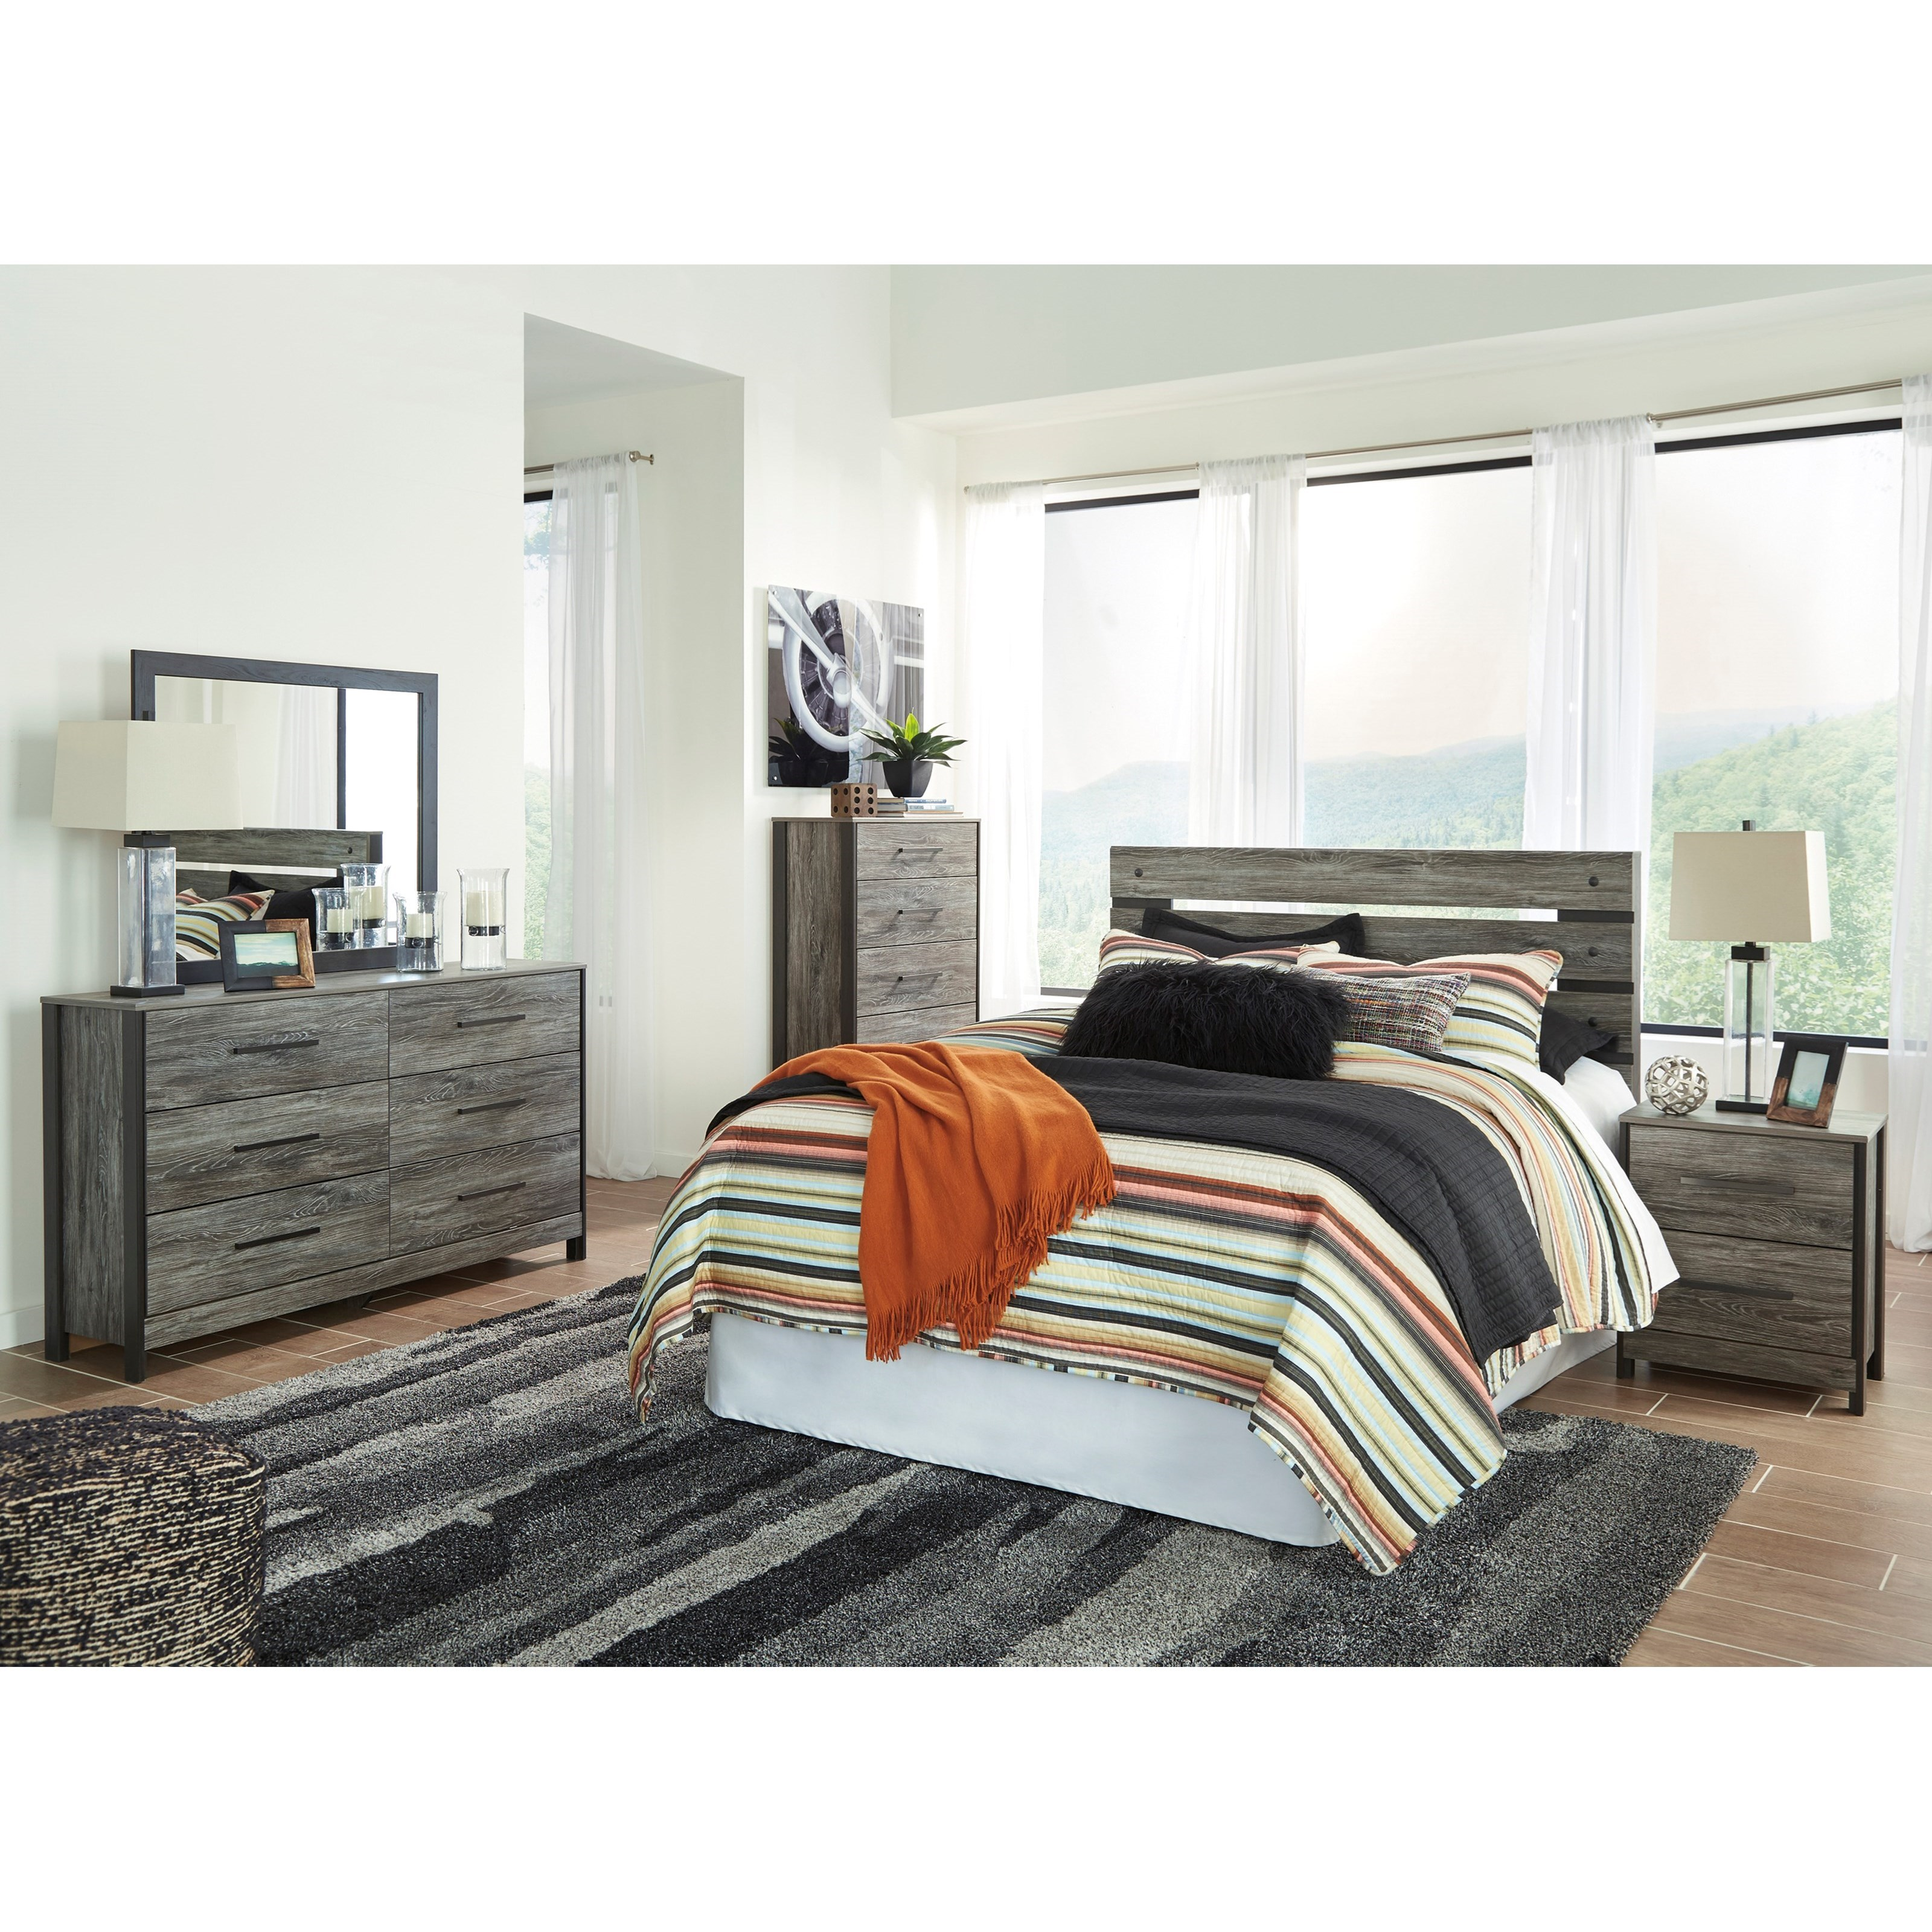 Cazenfeld 5pc Queen Bedroom Set by Signature Design by Ashley at Value City Furniture